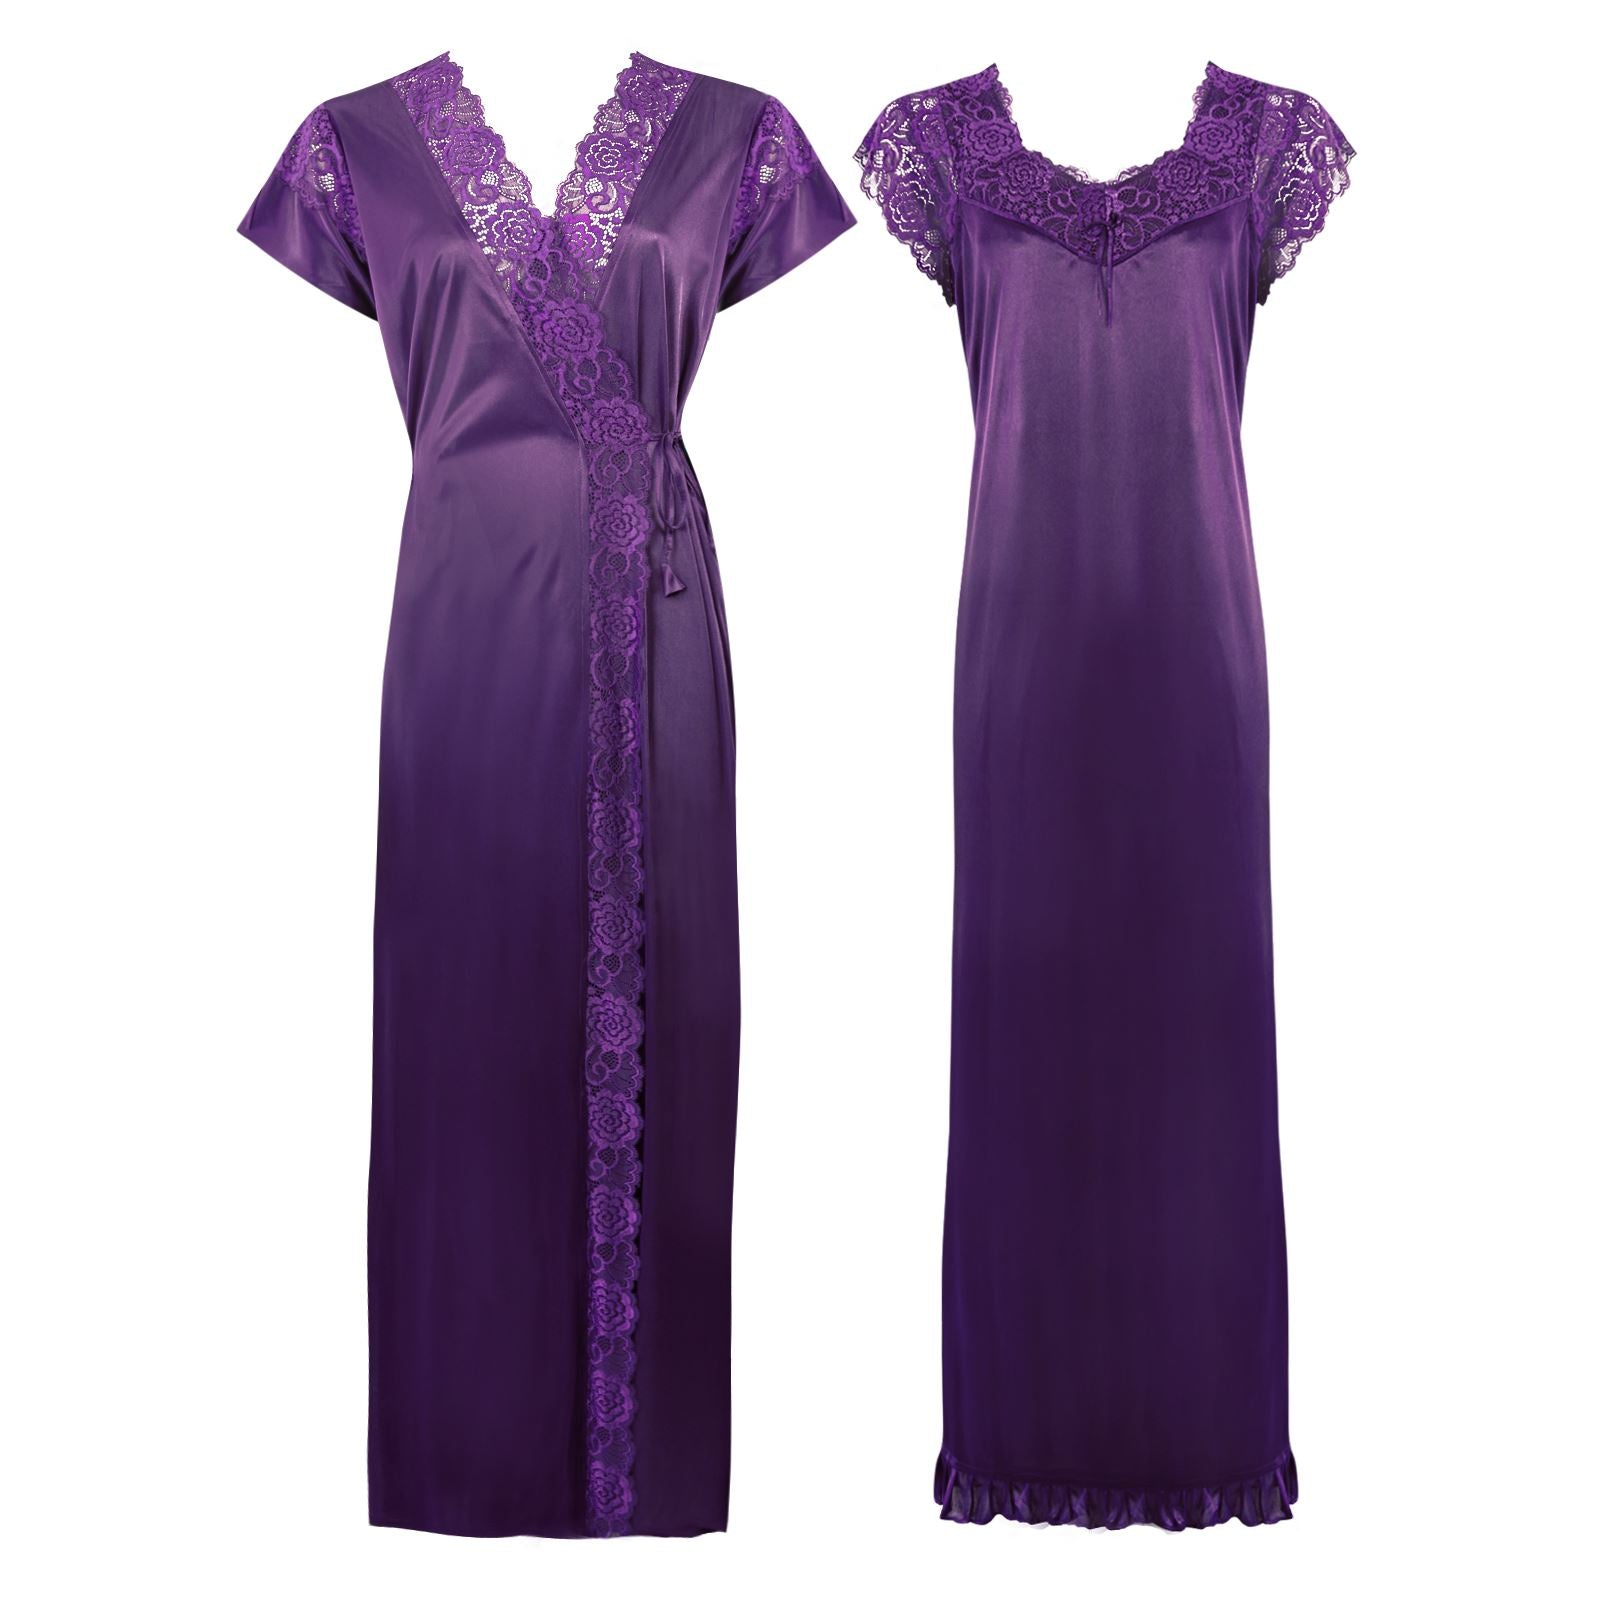 Color: Purple 2 Pc Satin Lace Nighty and Robe Size: One Size: Regular (8-14)